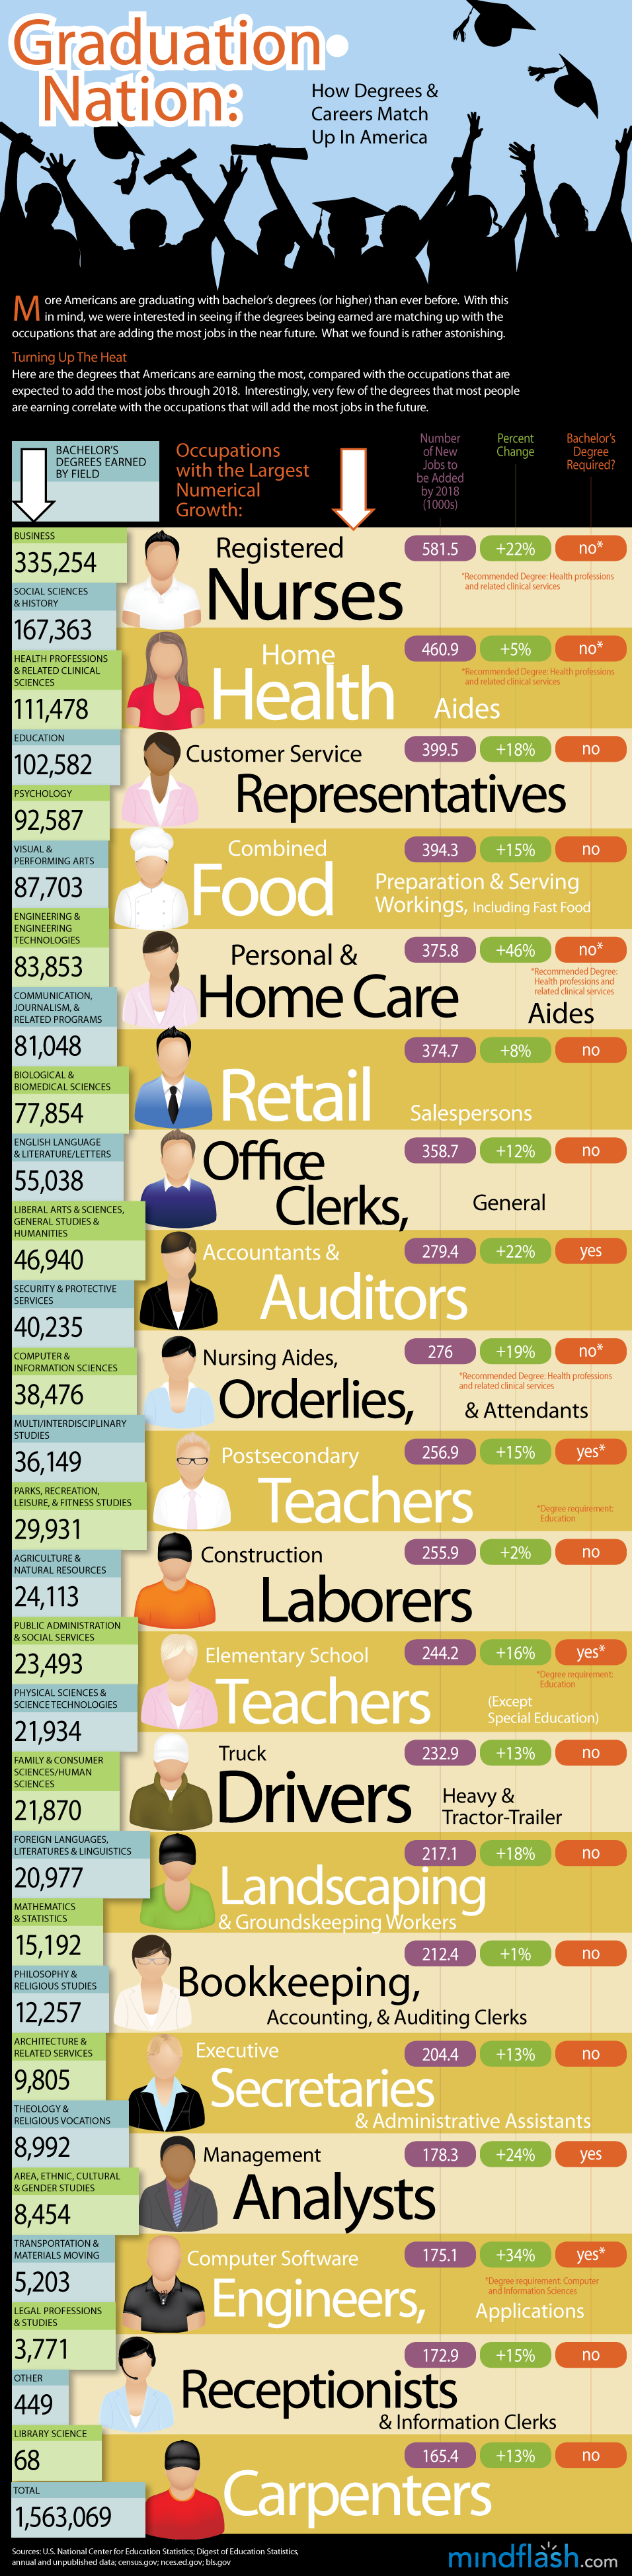 Graduation Nation: How Degrees & Careers Match Up In America